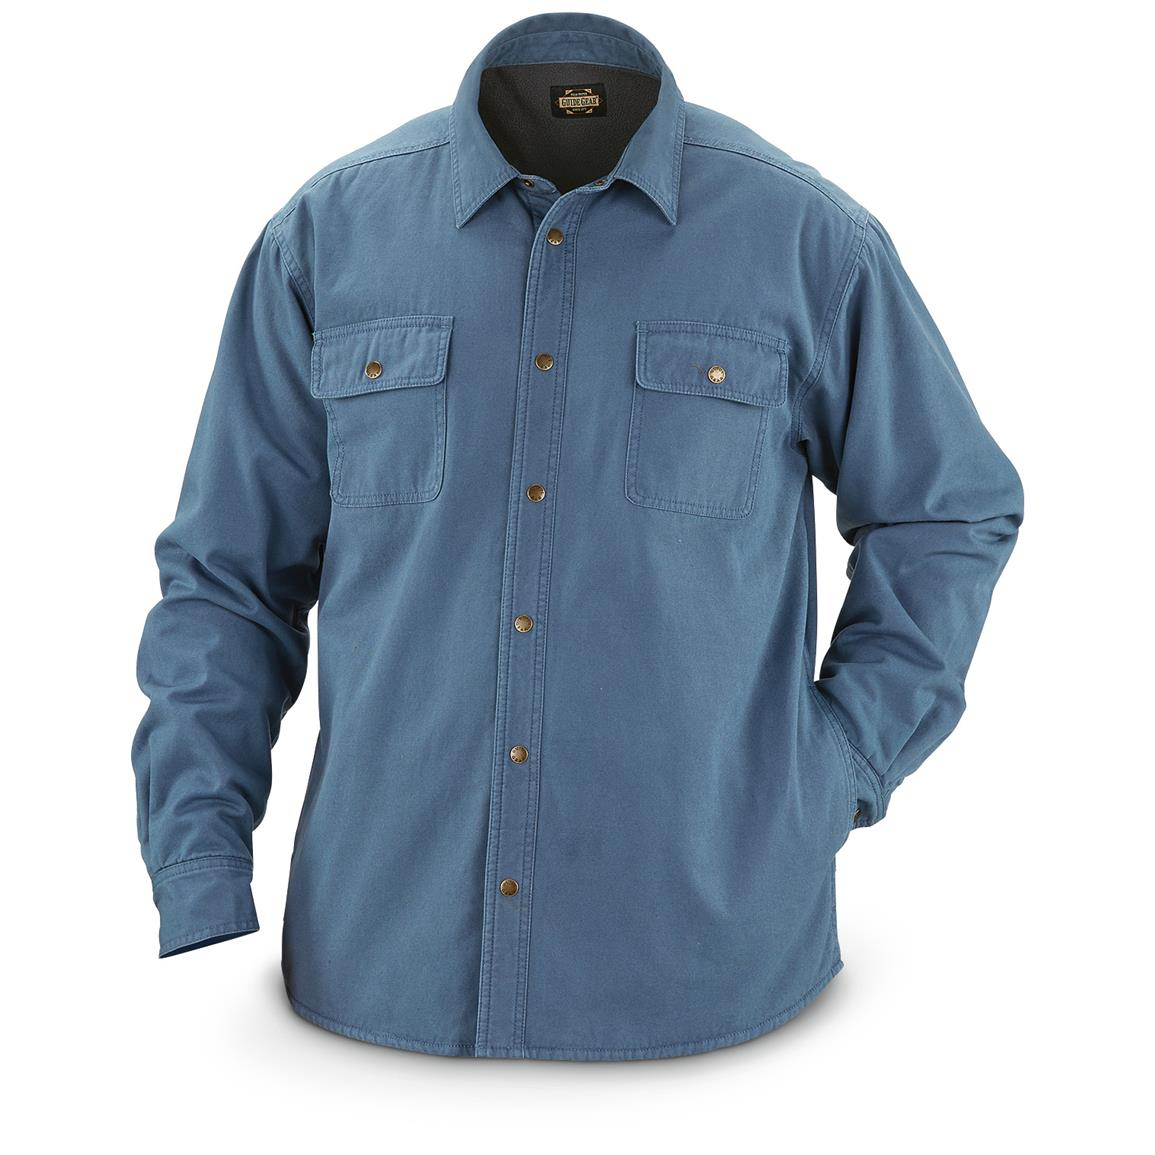 Guide Gear Men's Fleece-Lined Canvas Shirt Jacket, Navy